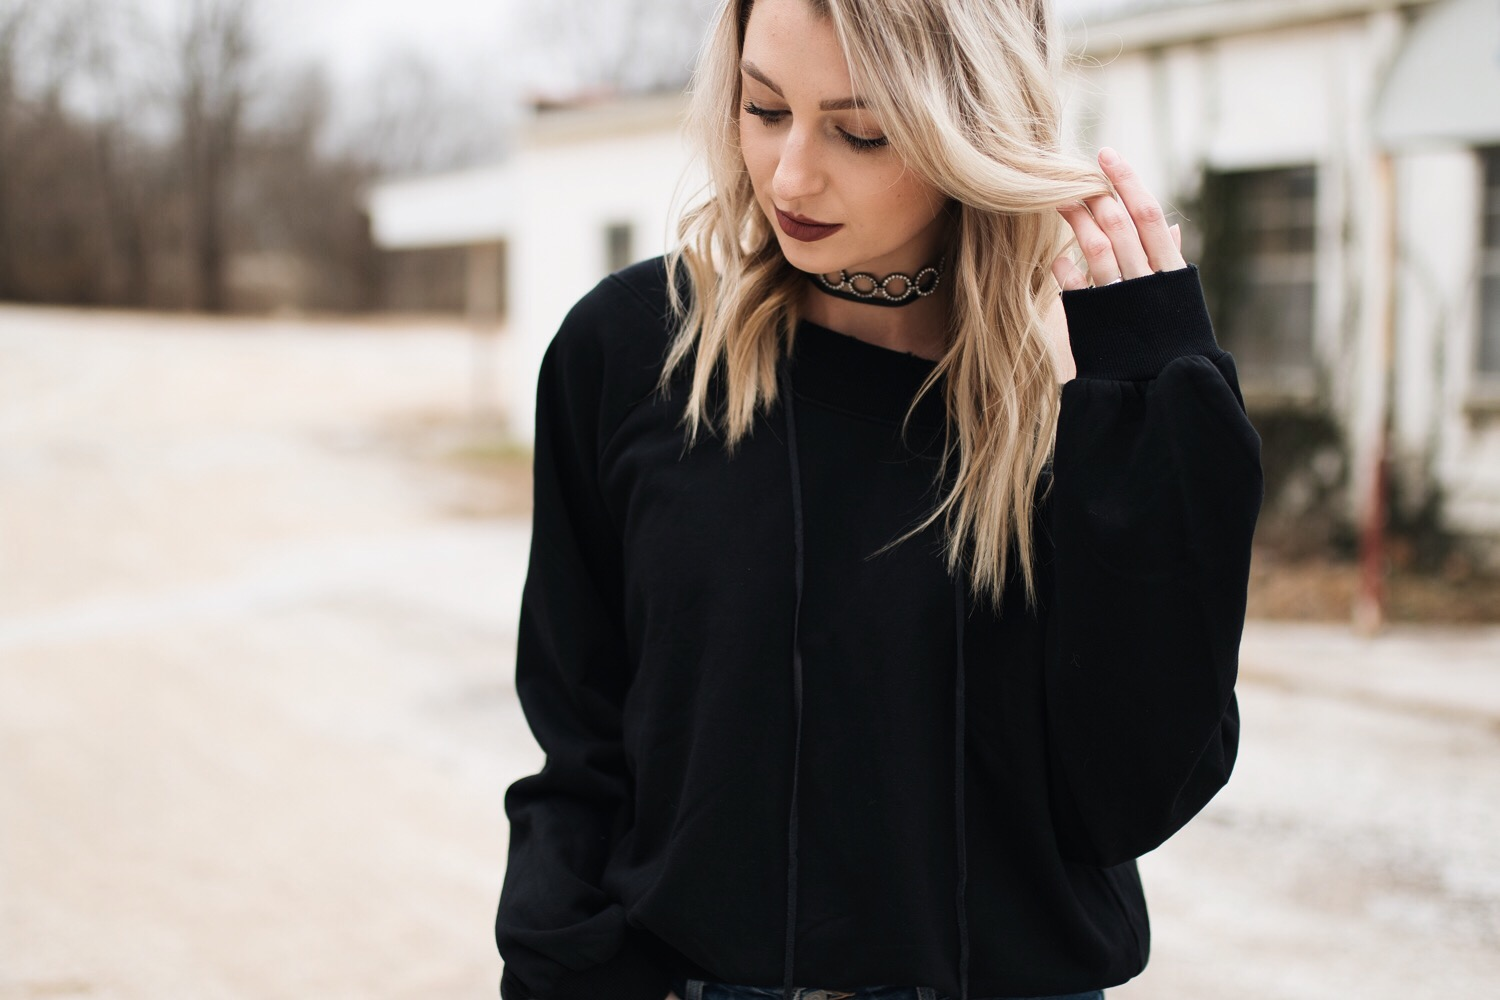 Dressed up black sweatshirt